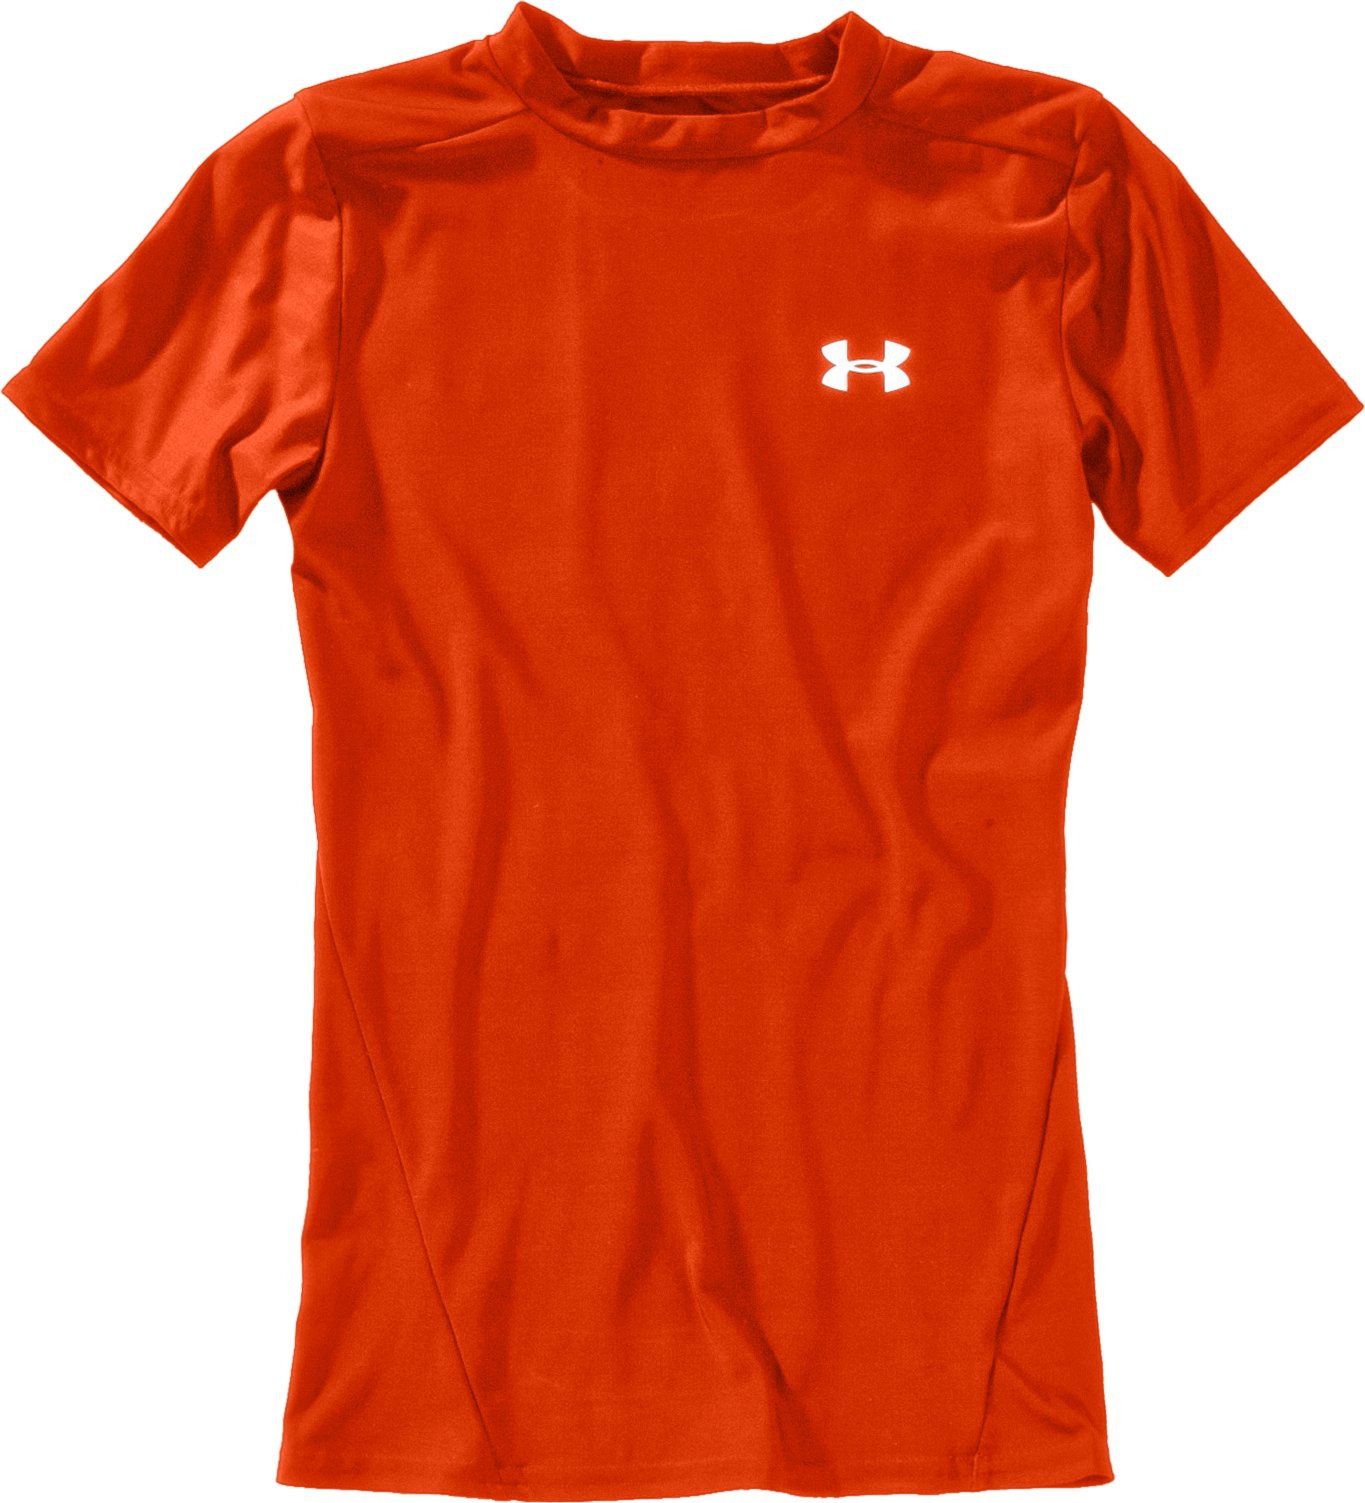 Boys' Short Sleeve HeatGear® T-Shirt II, Dark Orange, Laydown